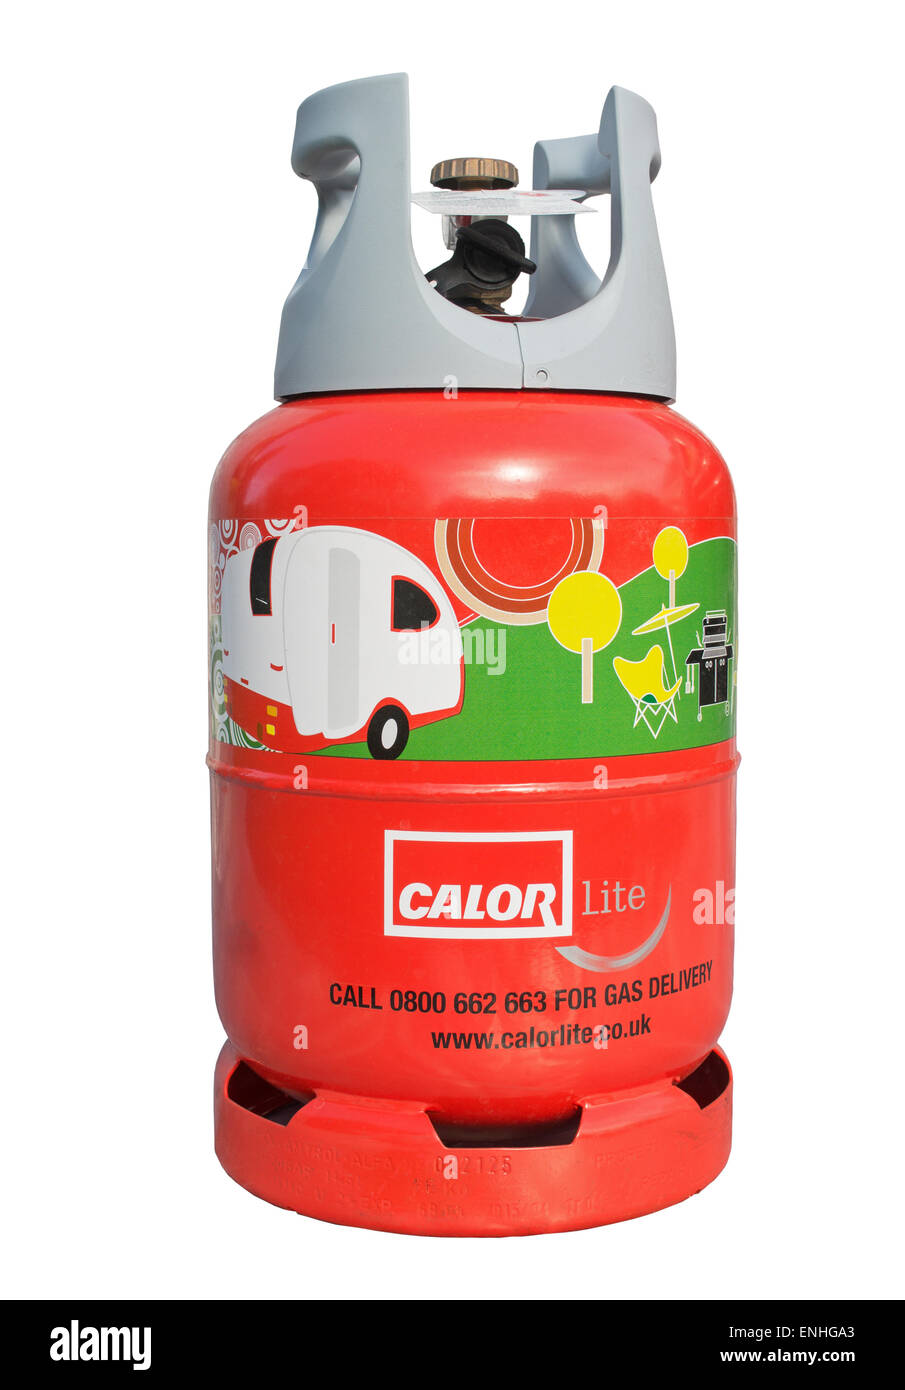 Calor Lite propane gas cylinder for use with a caravan, isolated against a white background - Stock Image